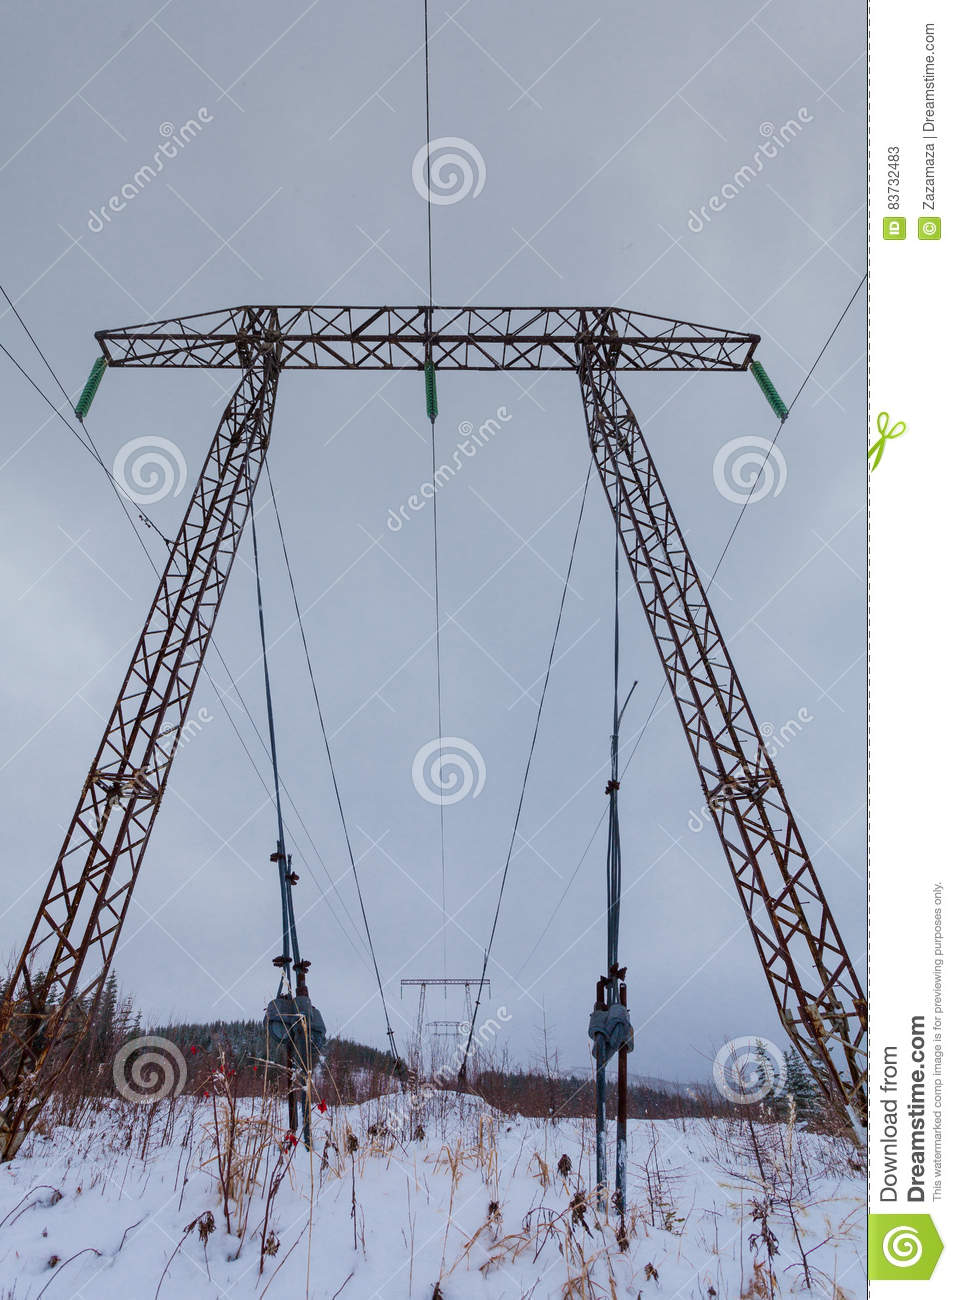 Electricity transmission power lines on winter background High voltage tower